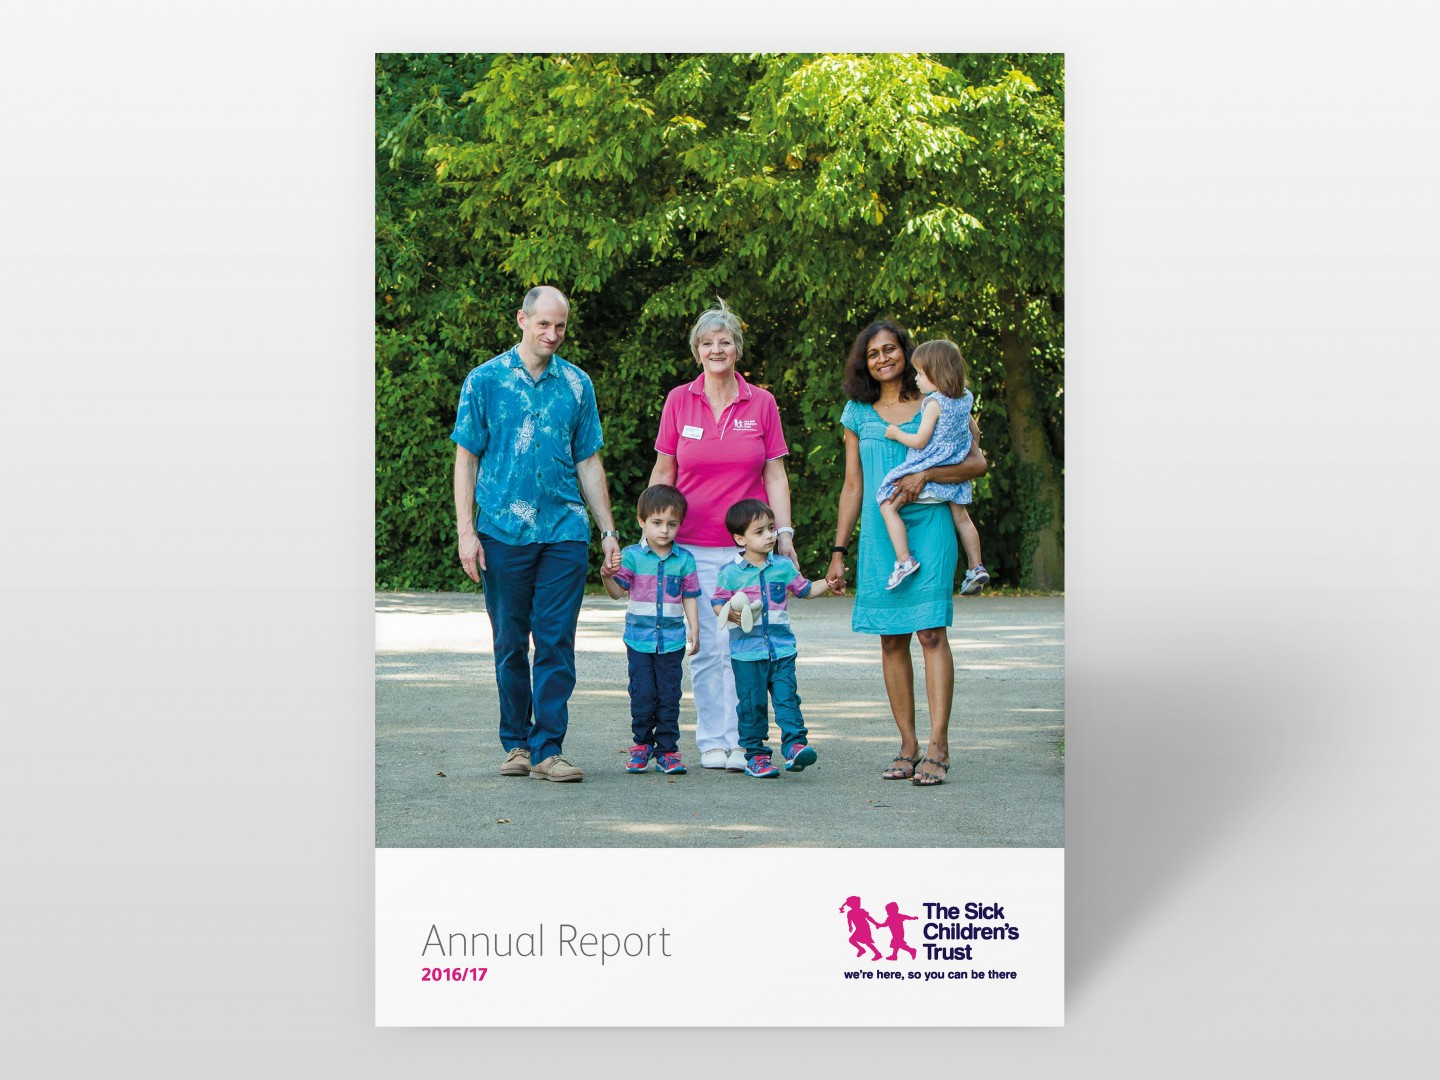 The Sick Children's Trust Annual Report Cover